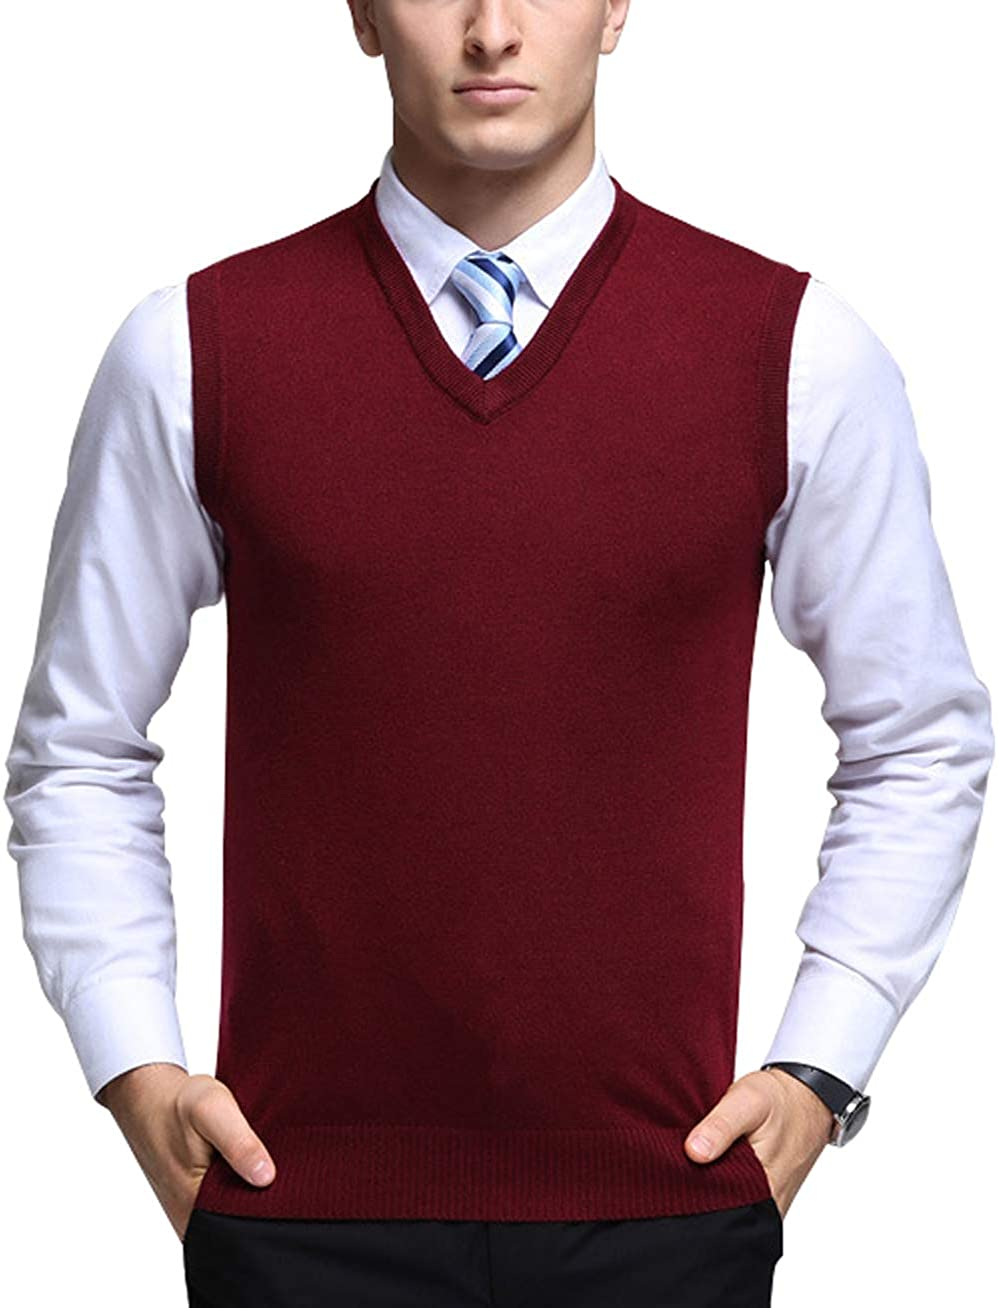 chouyatou Men's Solid Classic Sleeveless V-Neck Knitted Pullover Layer Sweater Vest